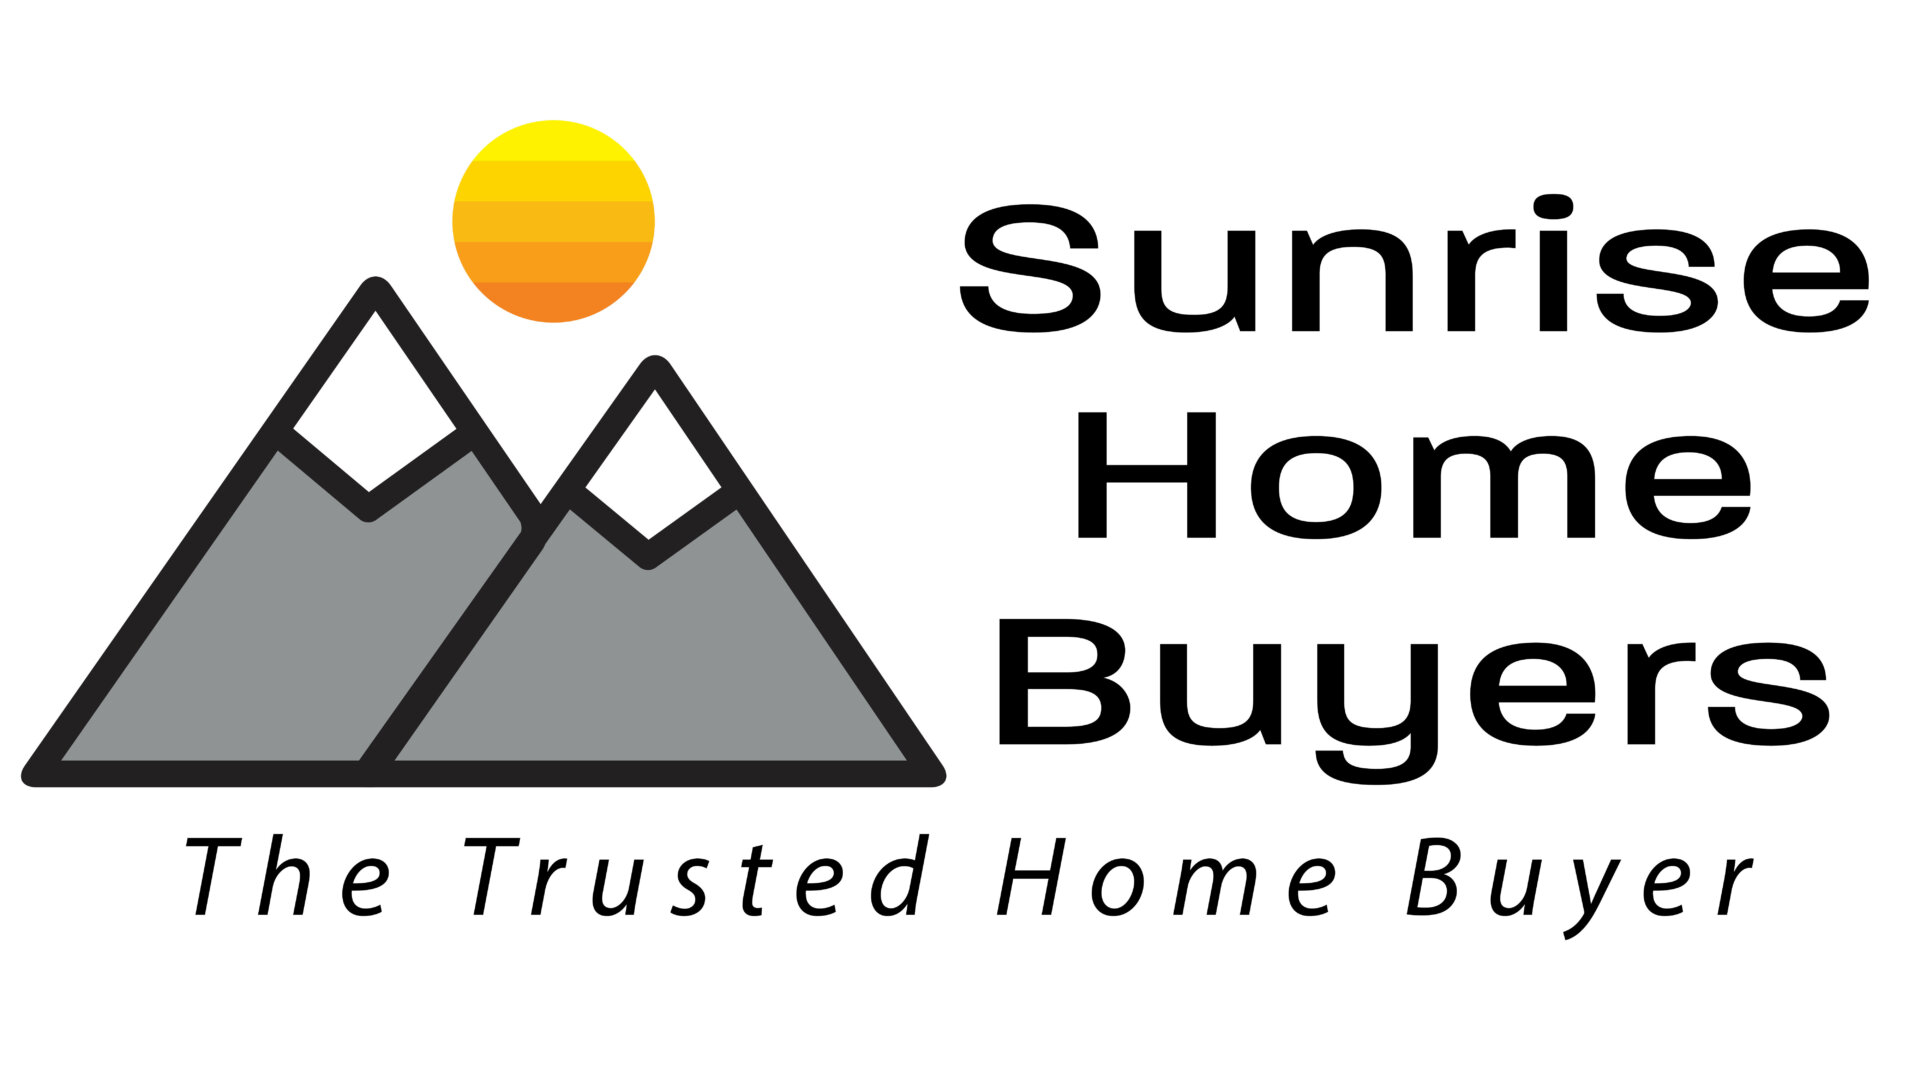 Sunrise Home Buyers logo